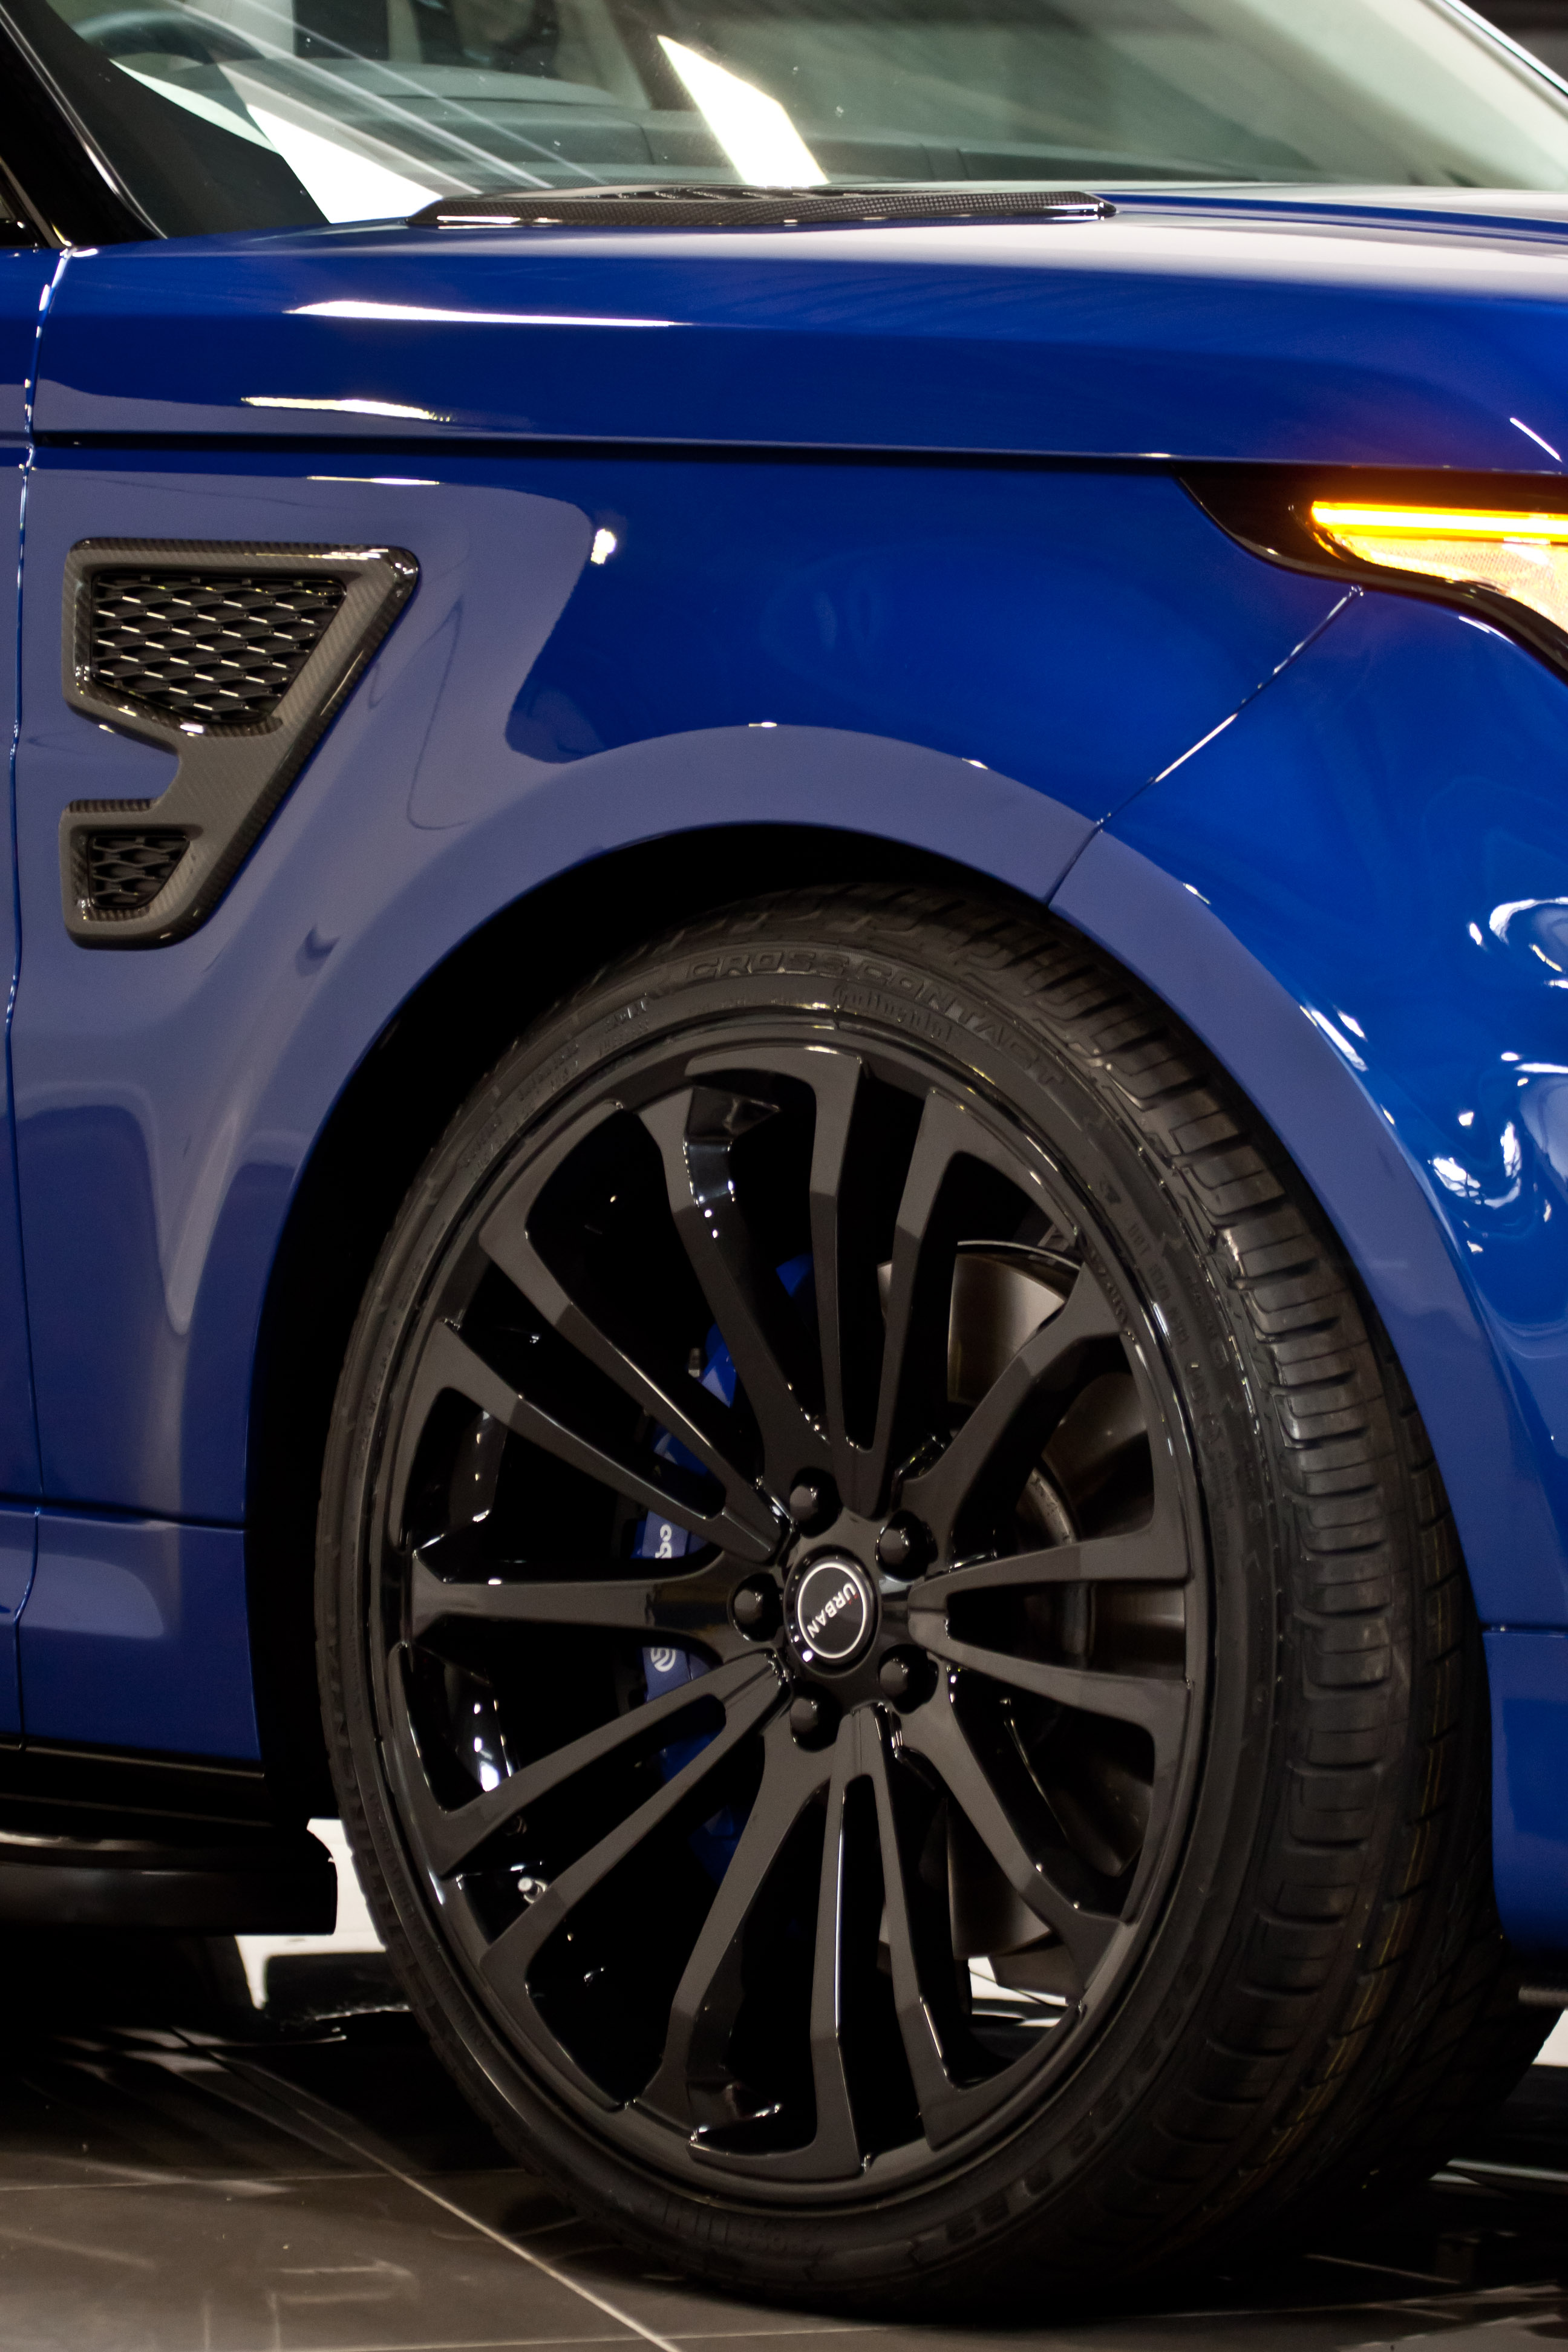 Urban v2 SVR Estoril Blue15